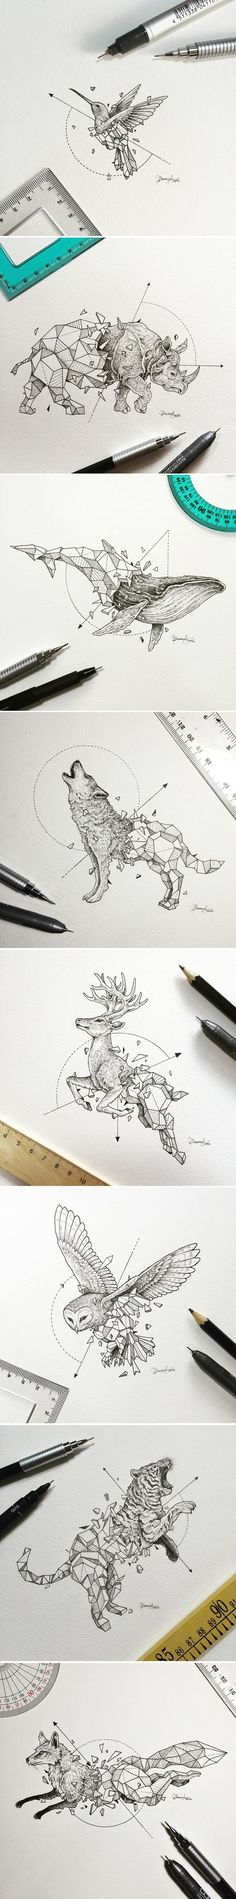 Imagine these as tattoos -Philippines-based designer Kerby Rosanes has been doing intricate artwork with a simple collection of black pens for years now. One of his more recent projects caught our attention though, and it's because of the way it mixes two different styles so well that it might as well be the peanut butter and jelly of illustration. Take a look!